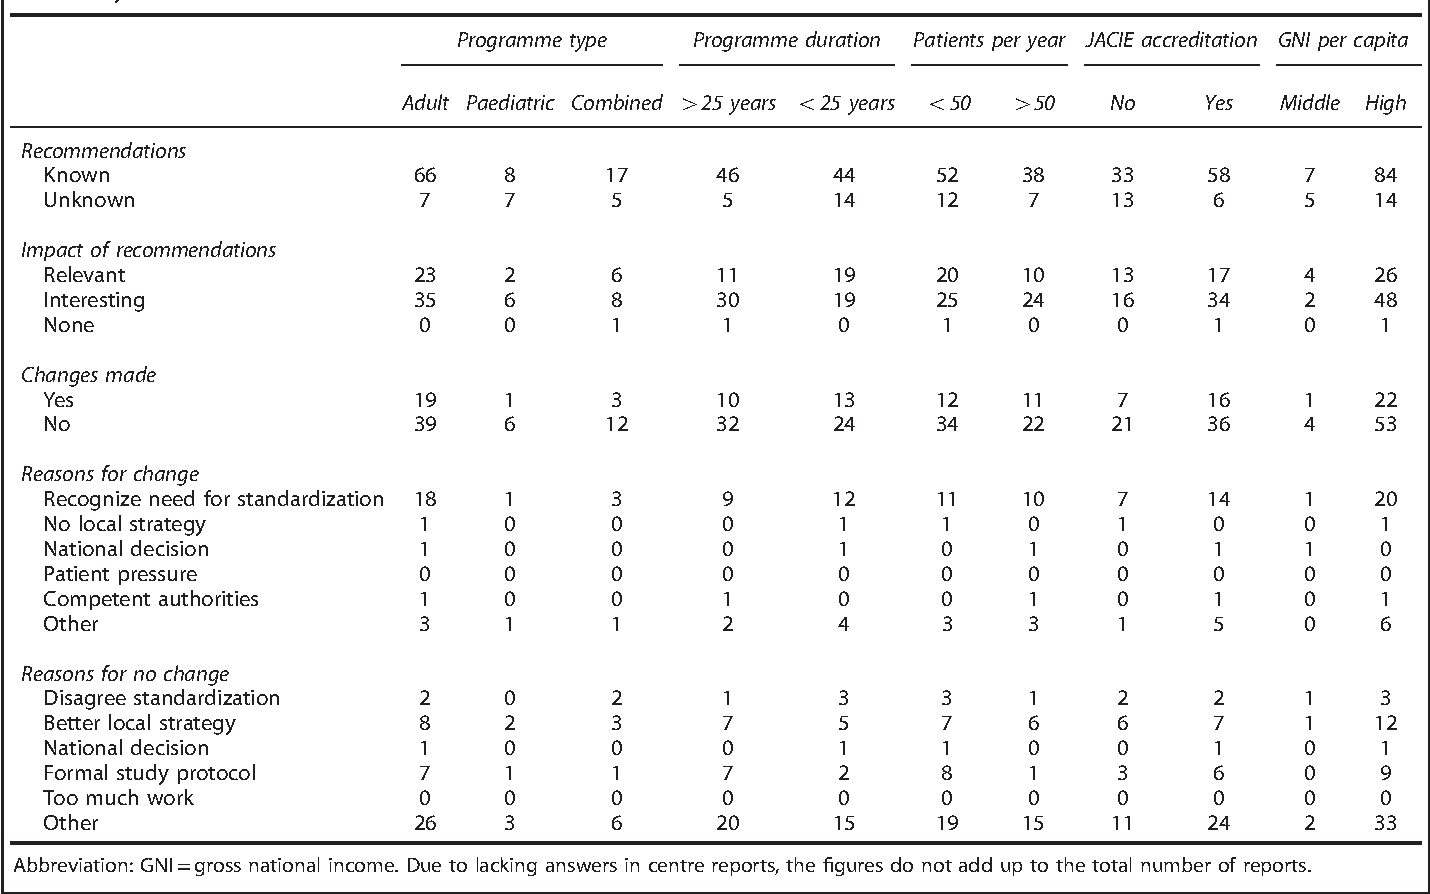 Table 1. Centre responses according to programme type, programme duration, patient number per year, JACIE accreditation and GNI per capita of the country